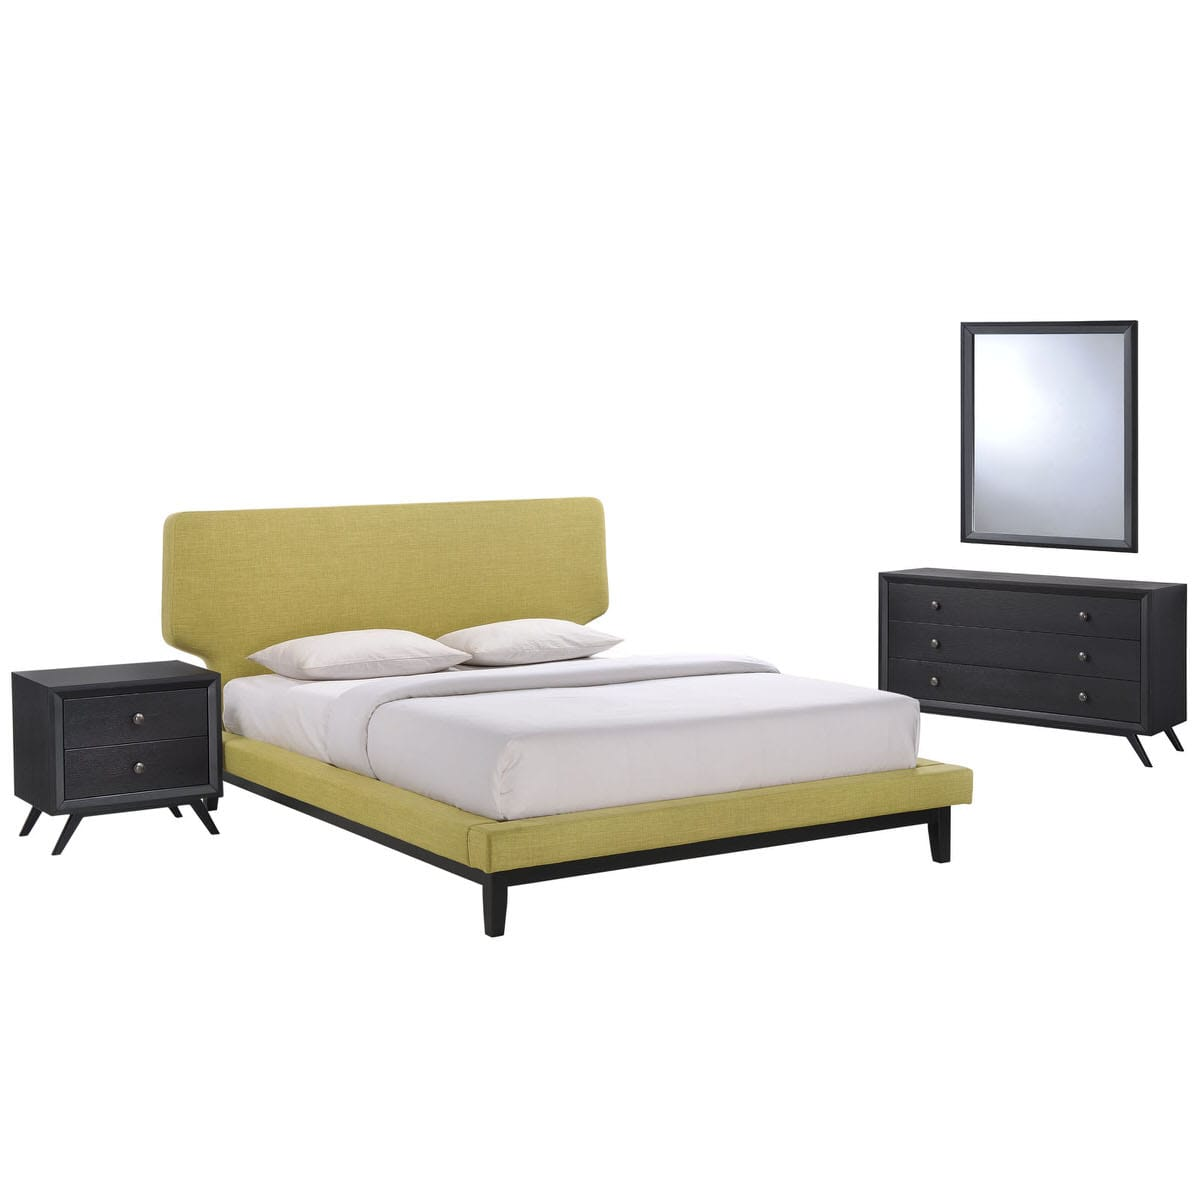 Bethany 4 Piece Queen Bedroom Set Black Green by Modern Living